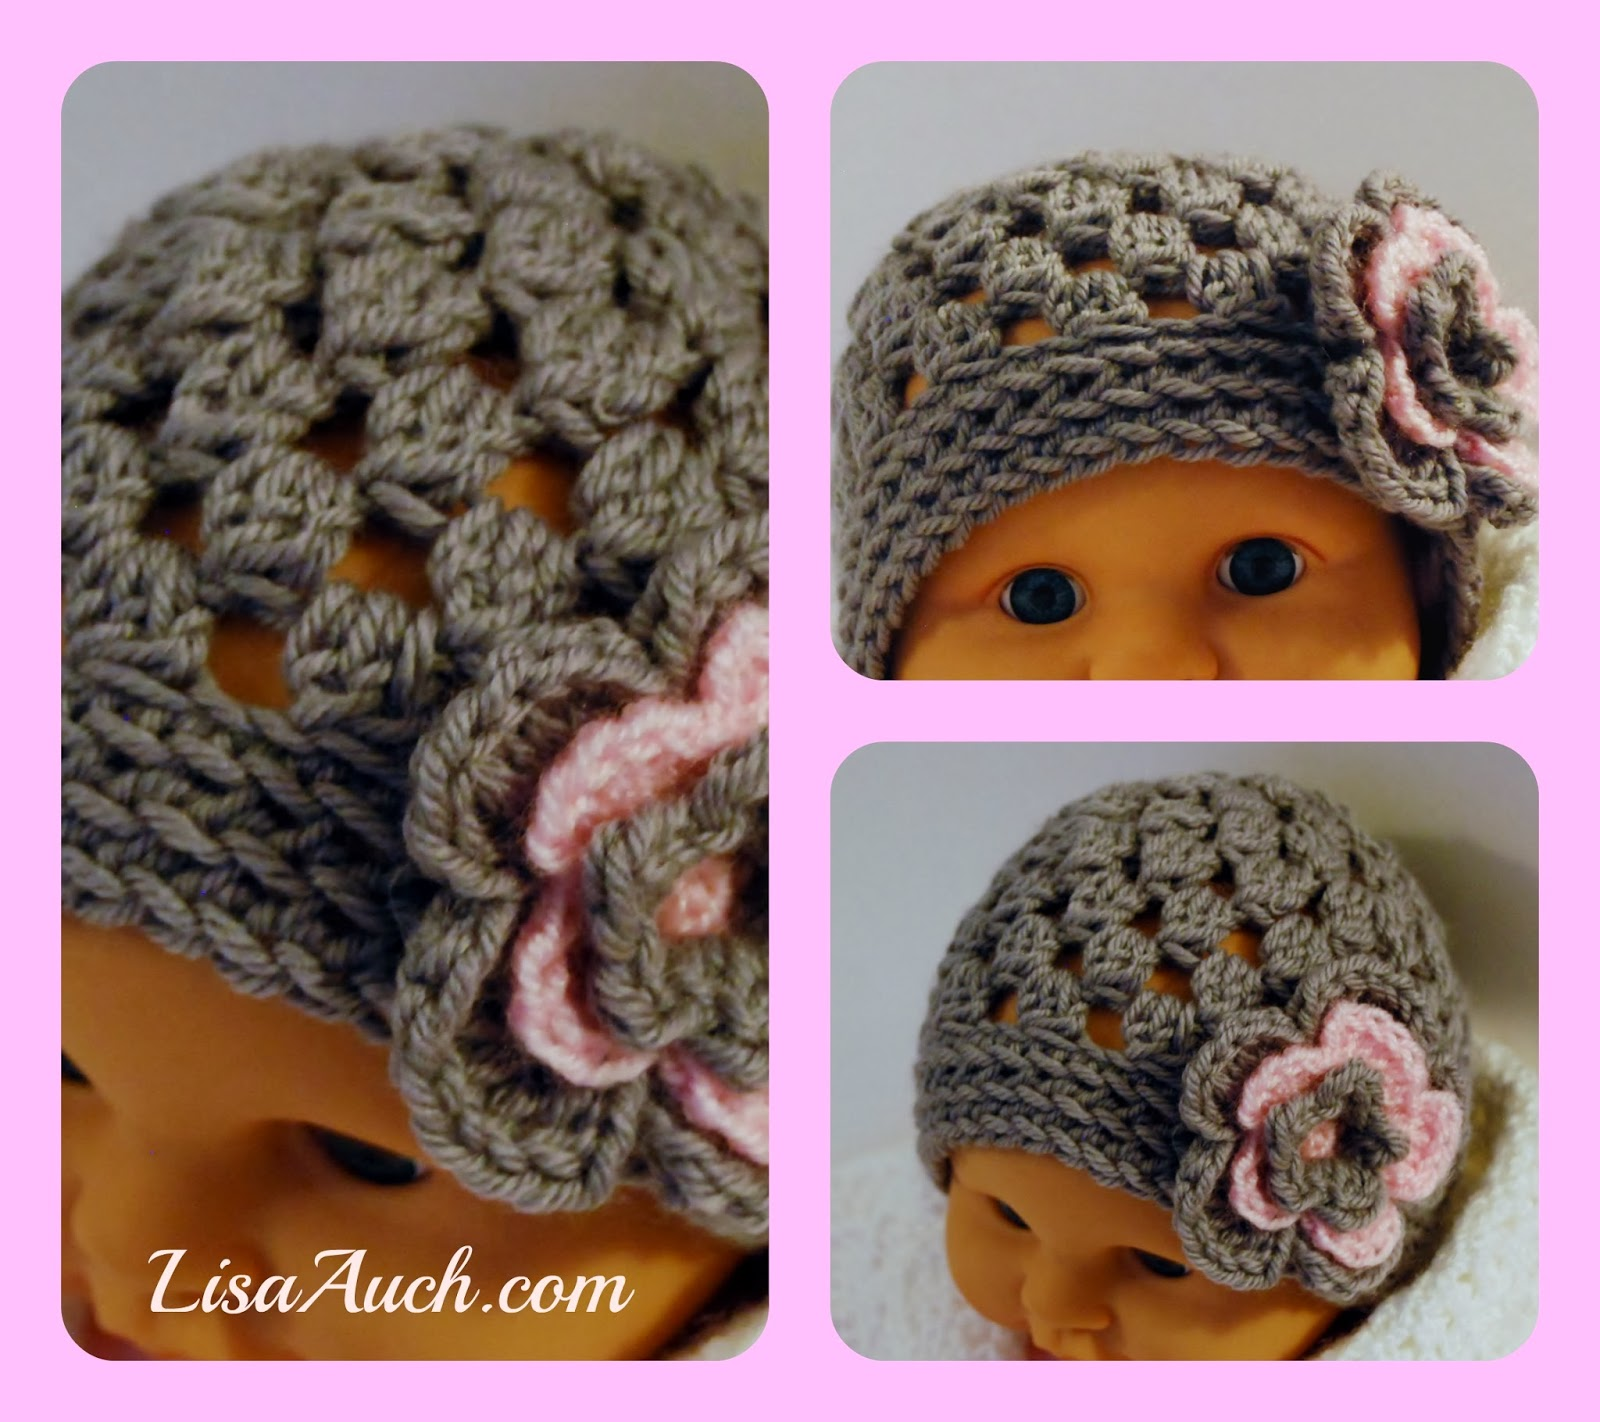 Free Crochet Flower Patterns For Baby Hats : Free Crochet Patterns and Designs by LisaAuch: FREE ...